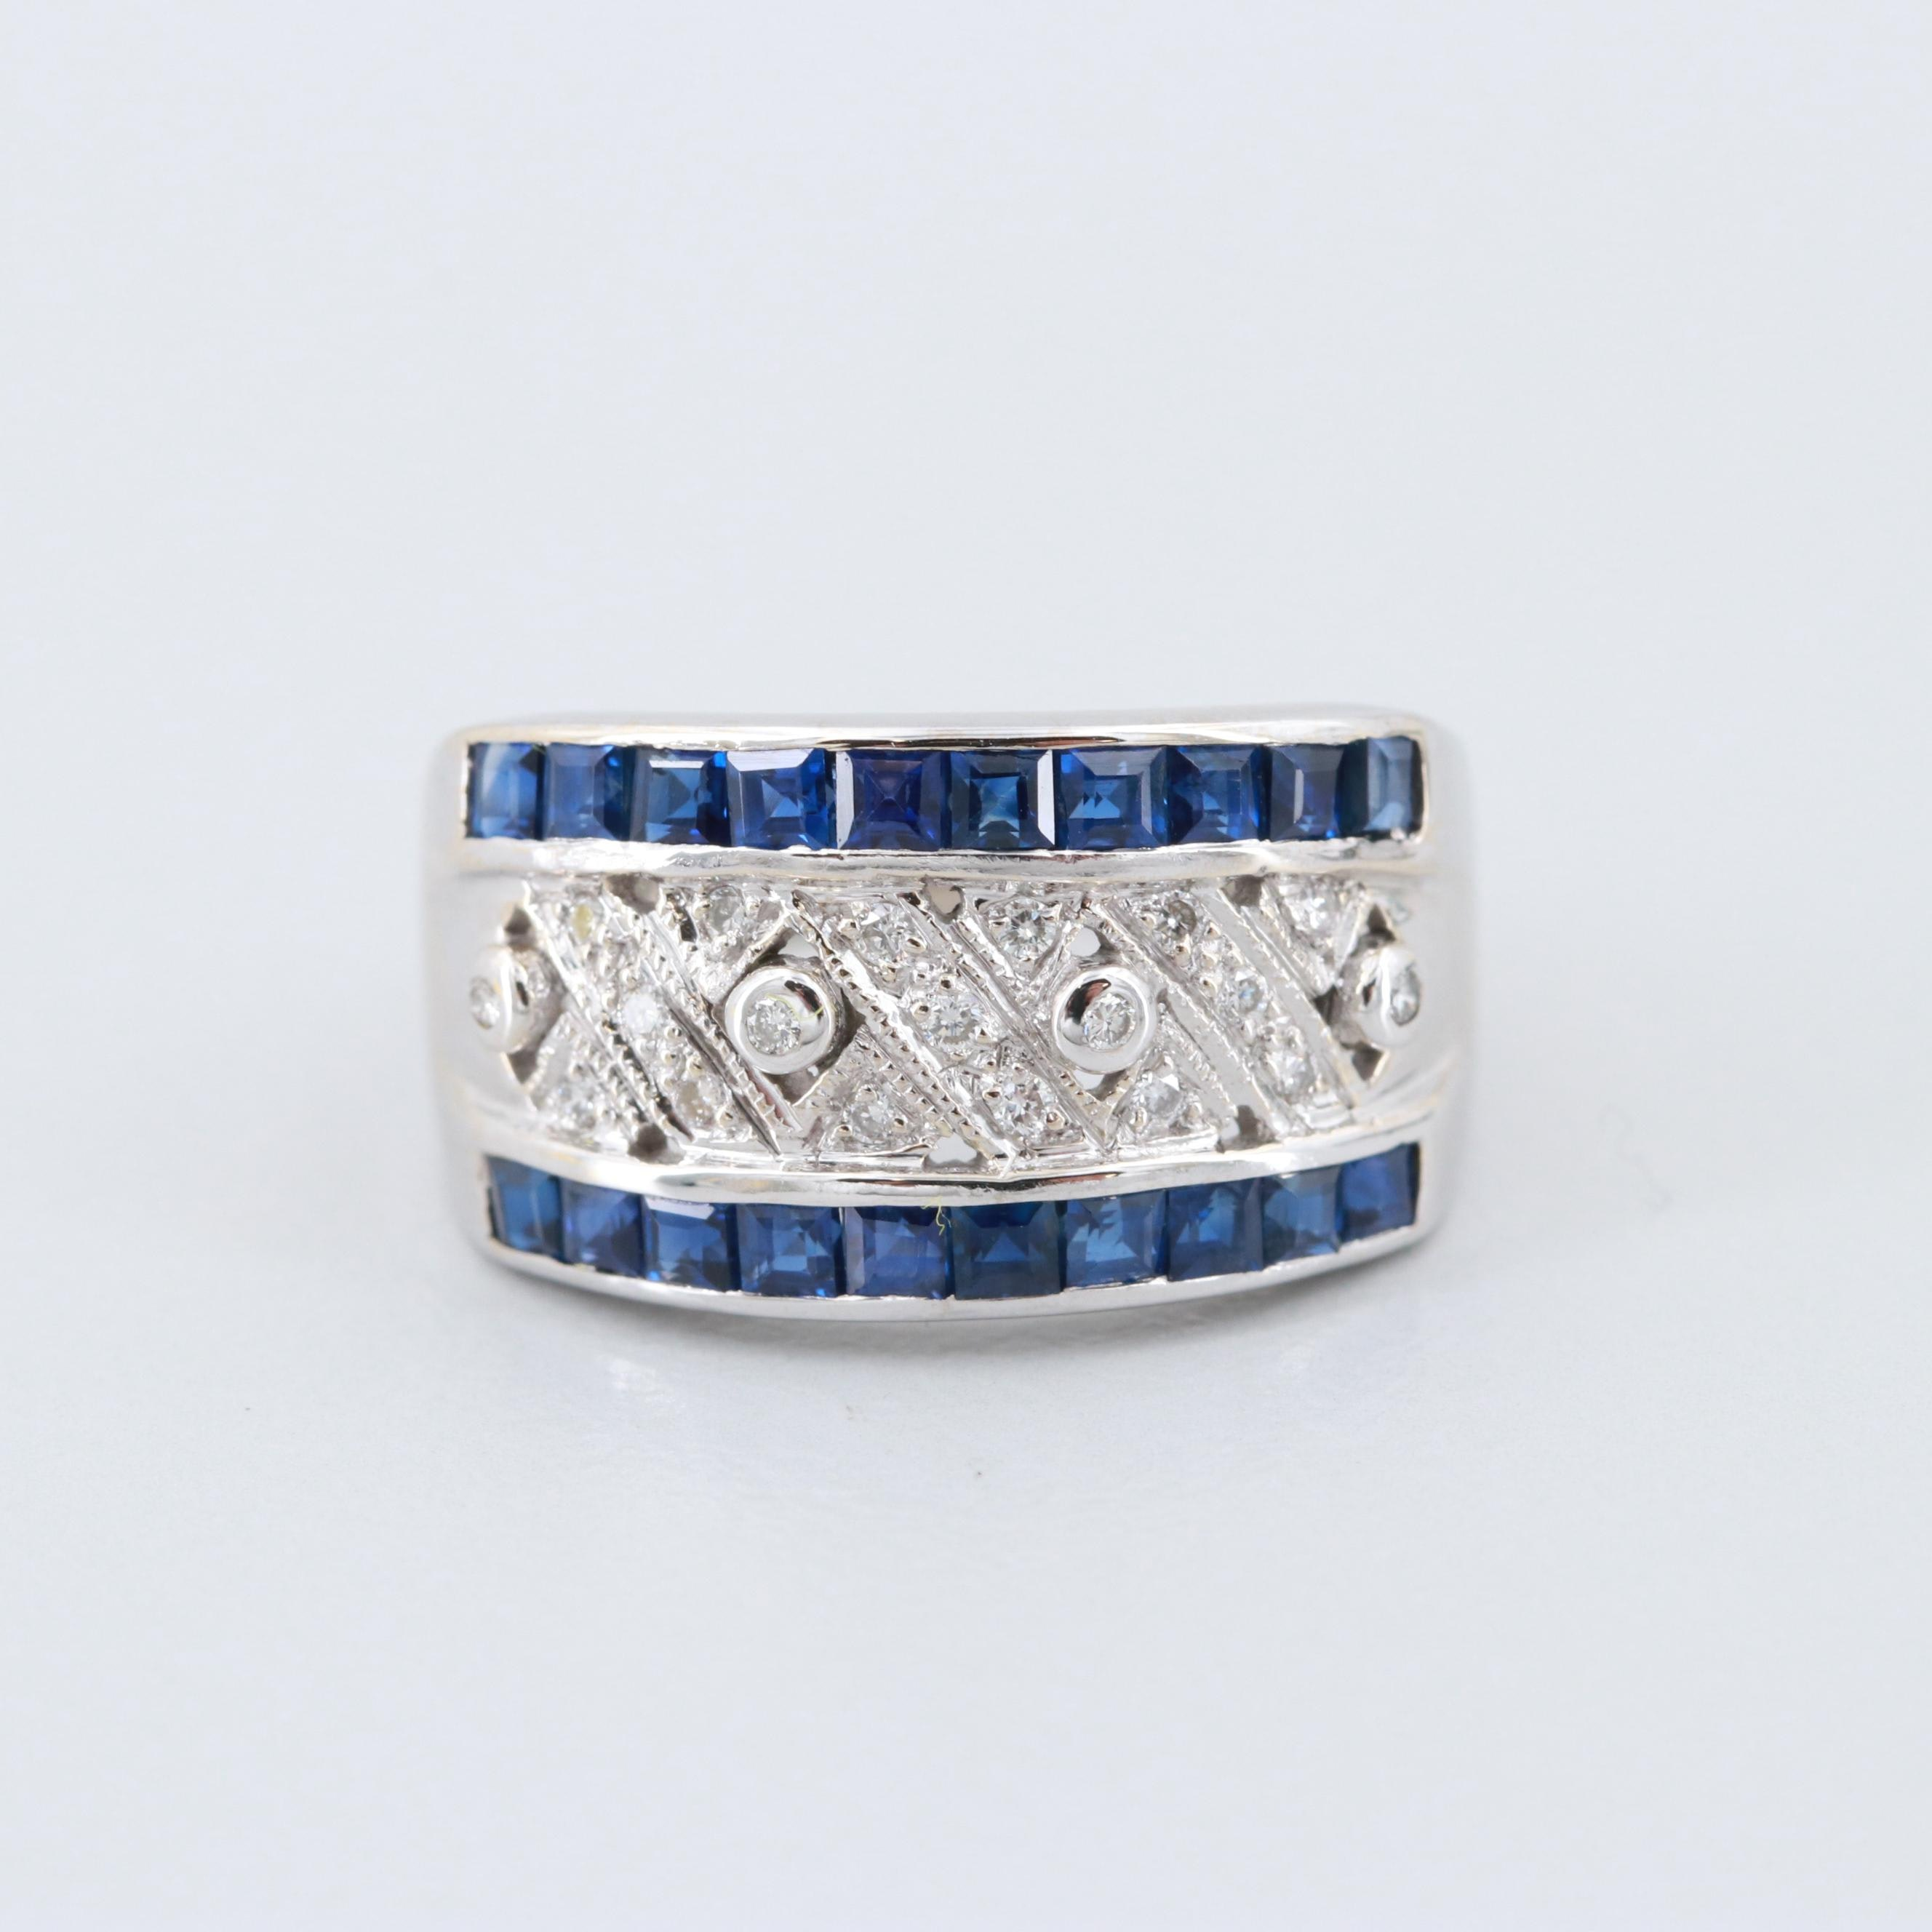 LeVian 18K White Gold Blue Sapphire and Diamond Ring